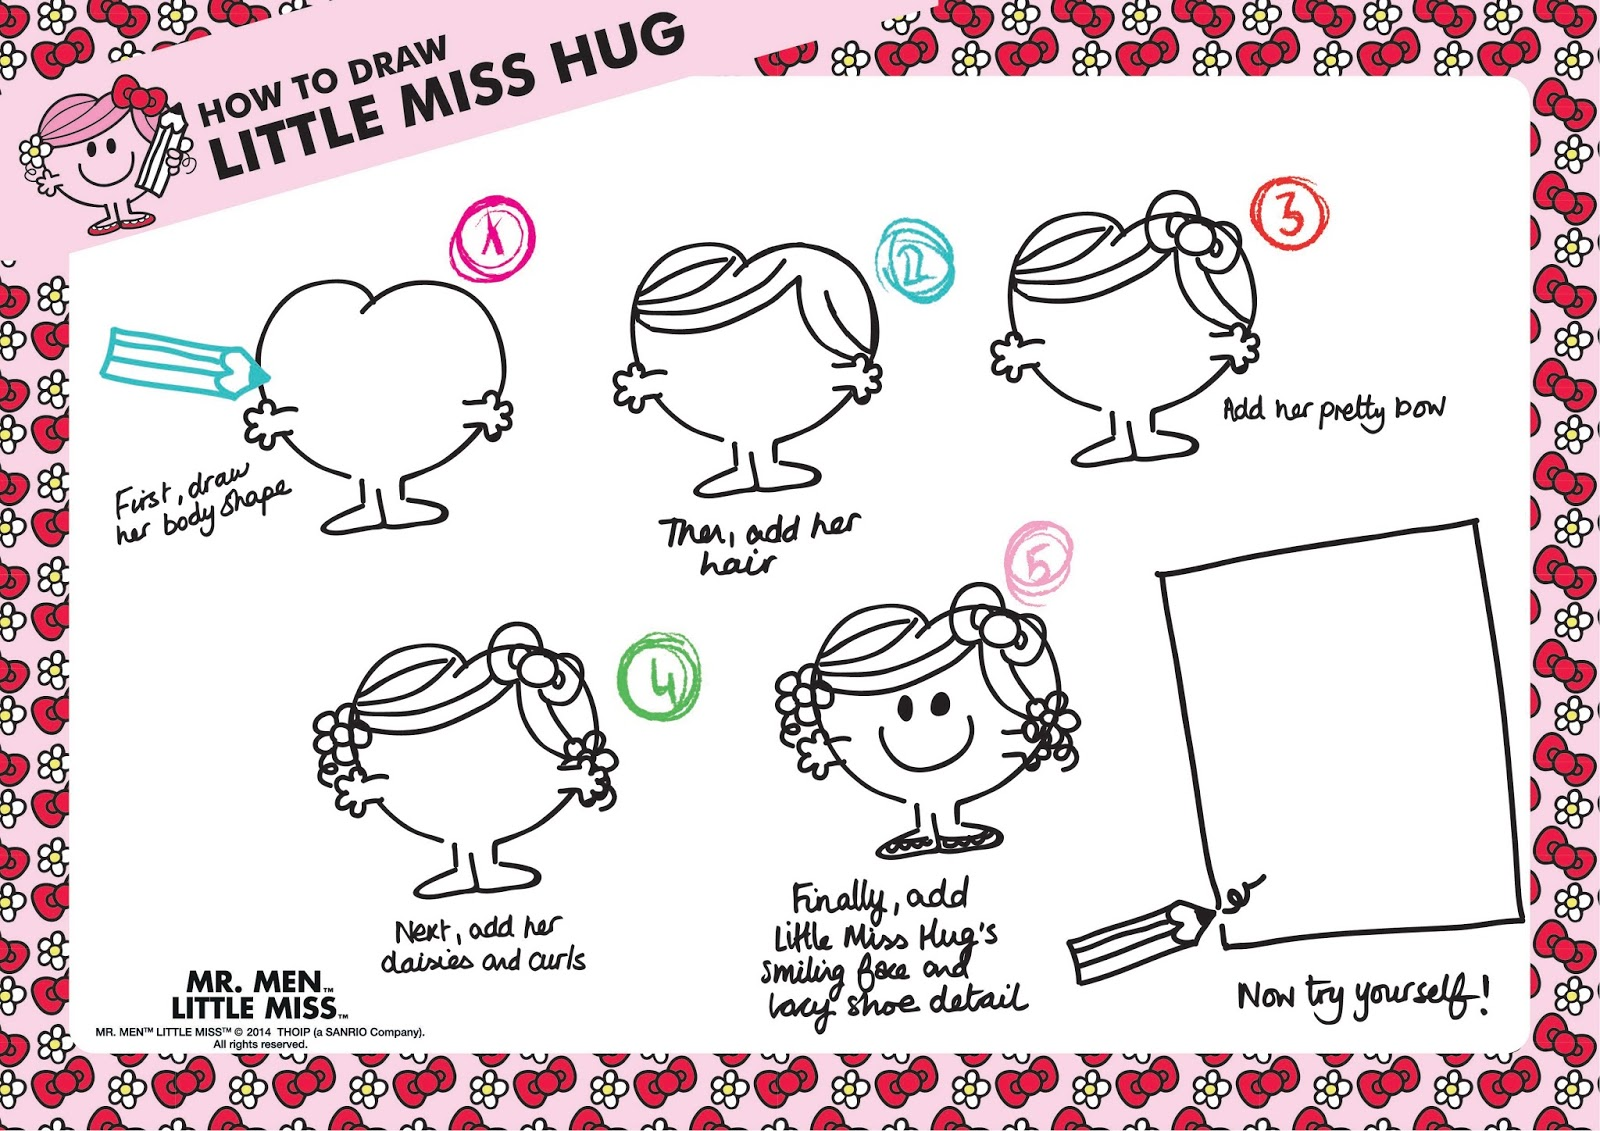 Little Miss Hug how to draw tutorial